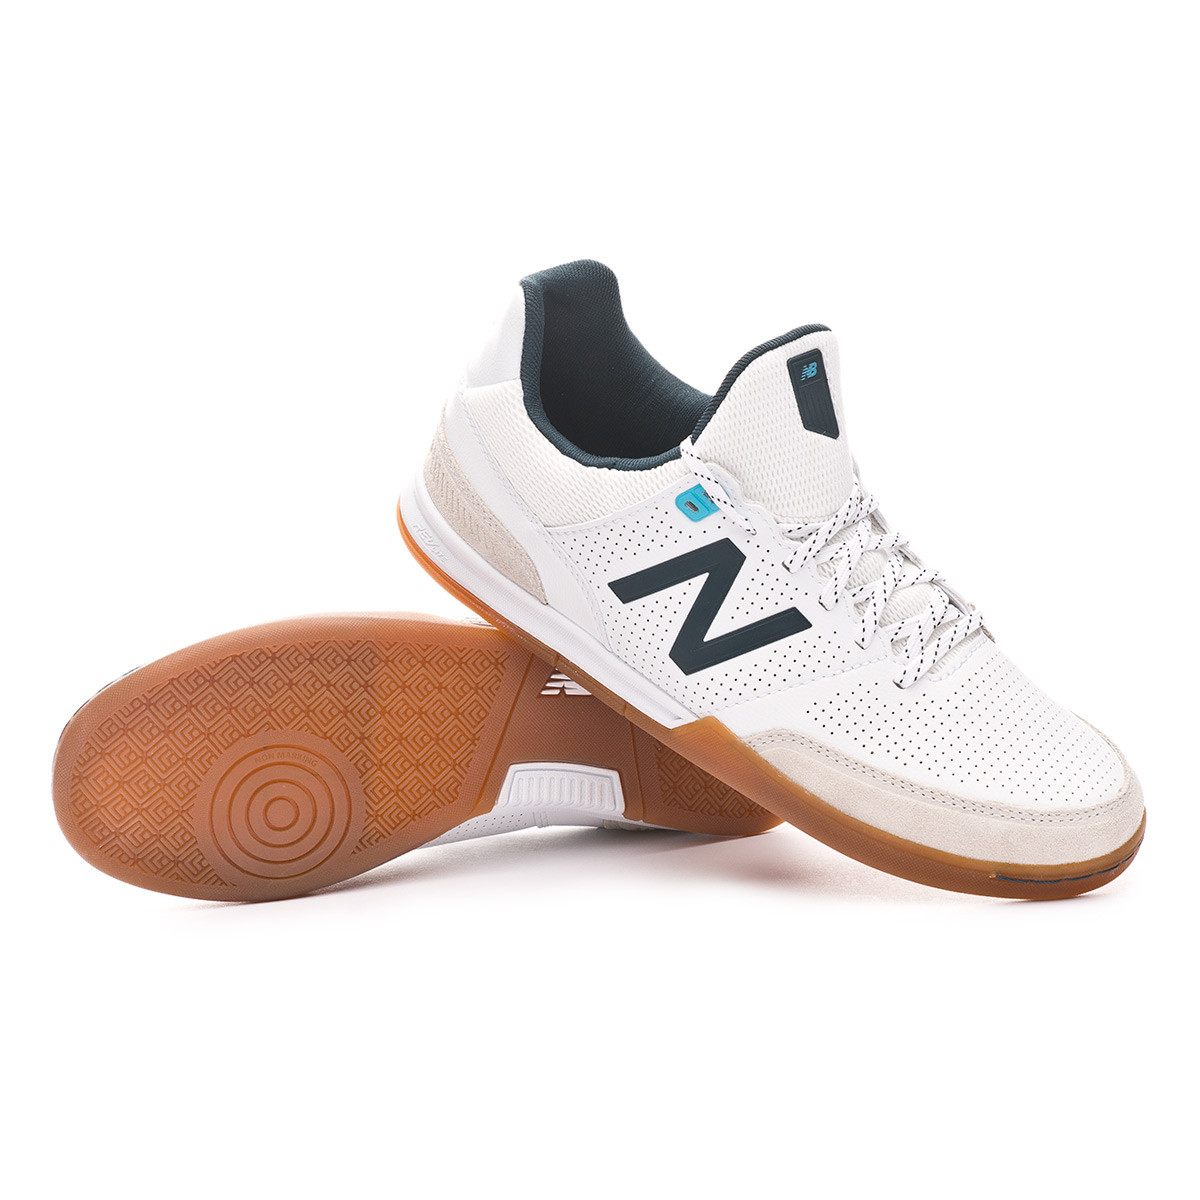 Autumn Cheap Sale New Balance Audazo Pro IN chaussures